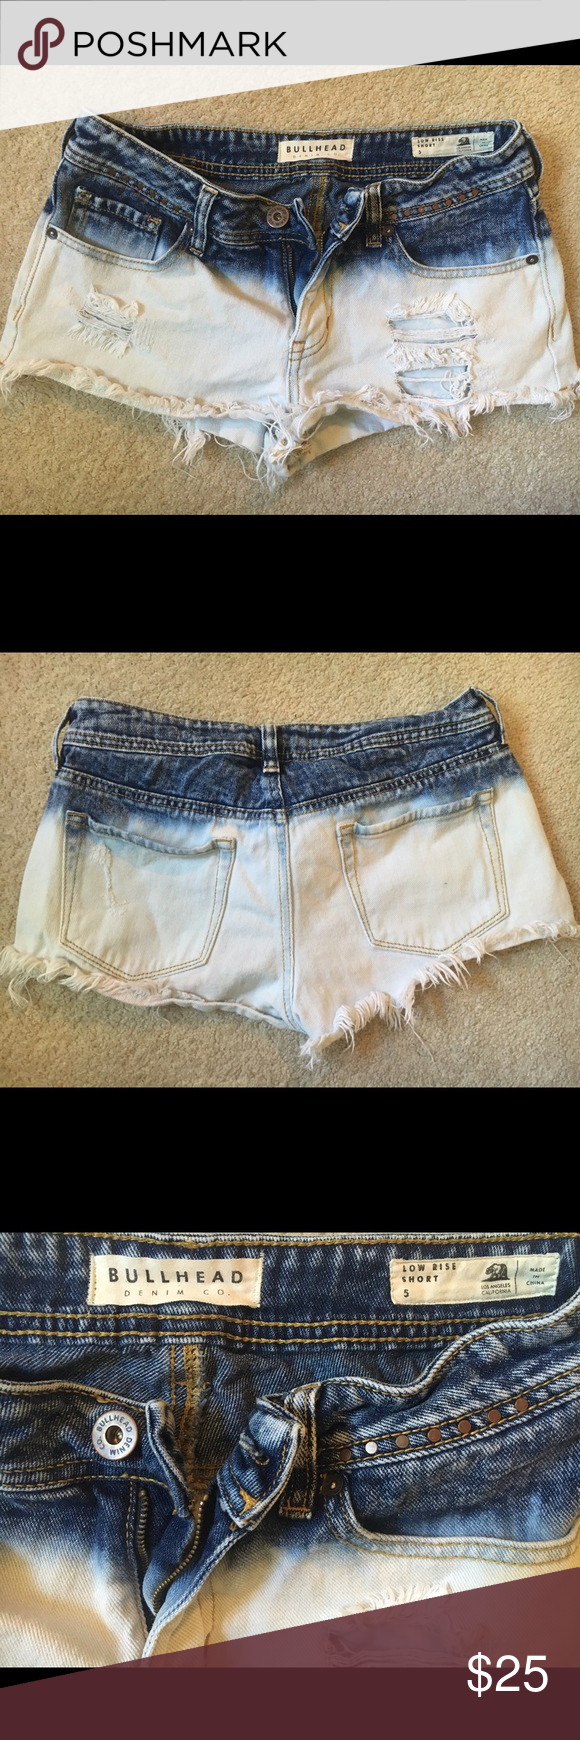 Ombré wash denim shorts size 5 (fits women's 2/4) Worn only a few times, super cute trendy ombré wash bullhead denim jean low rise shorts! Bought them from PacSun. The size is 5 but they fit like a 2/4! PacSun Shorts Jean Shorts